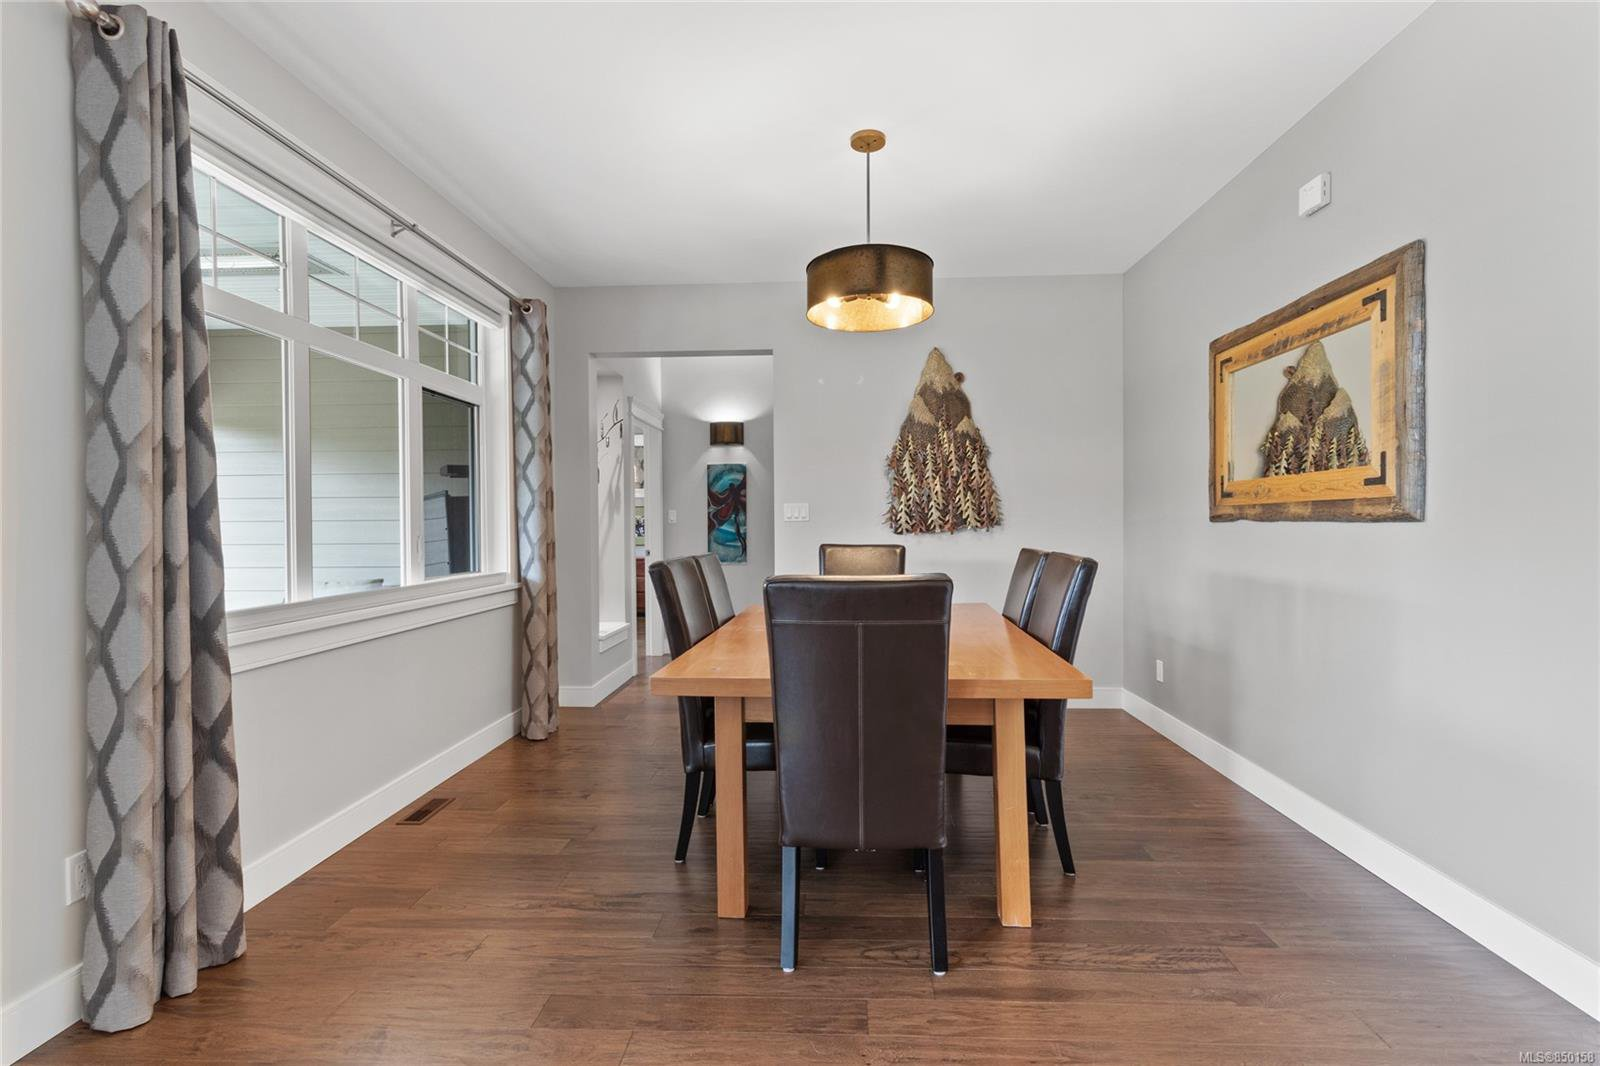 Photo 15: Photos: 3228 Majestic Dr in : CV Crown Isle House for sale (Comox Valley)  : MLS®# 850158